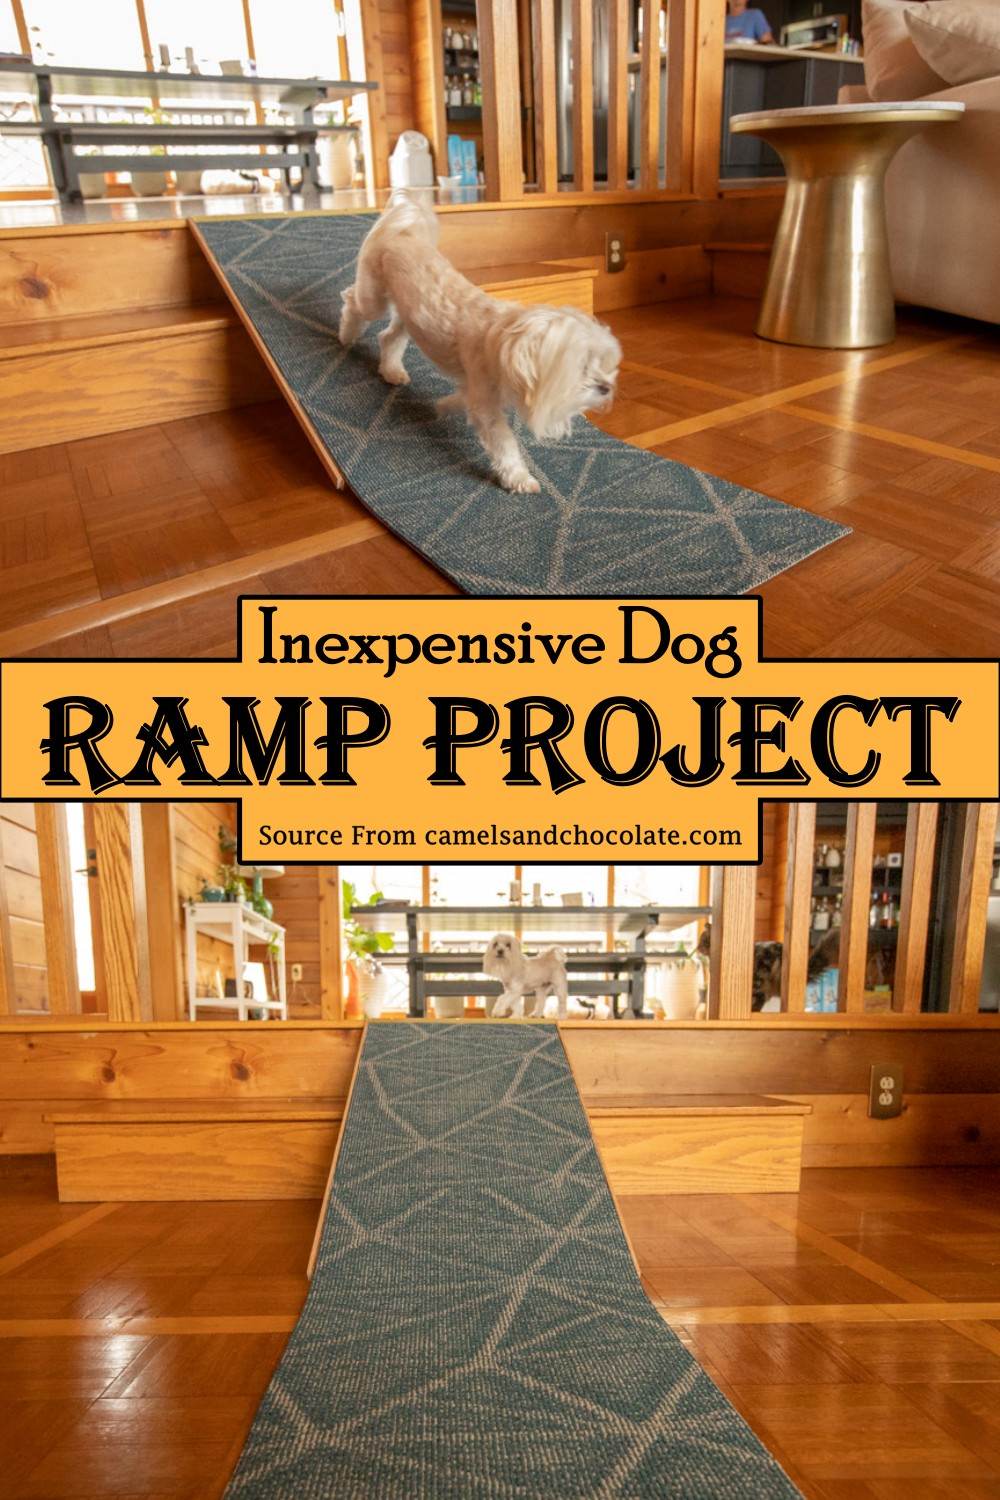 Inexpensive Dog Ramp Project